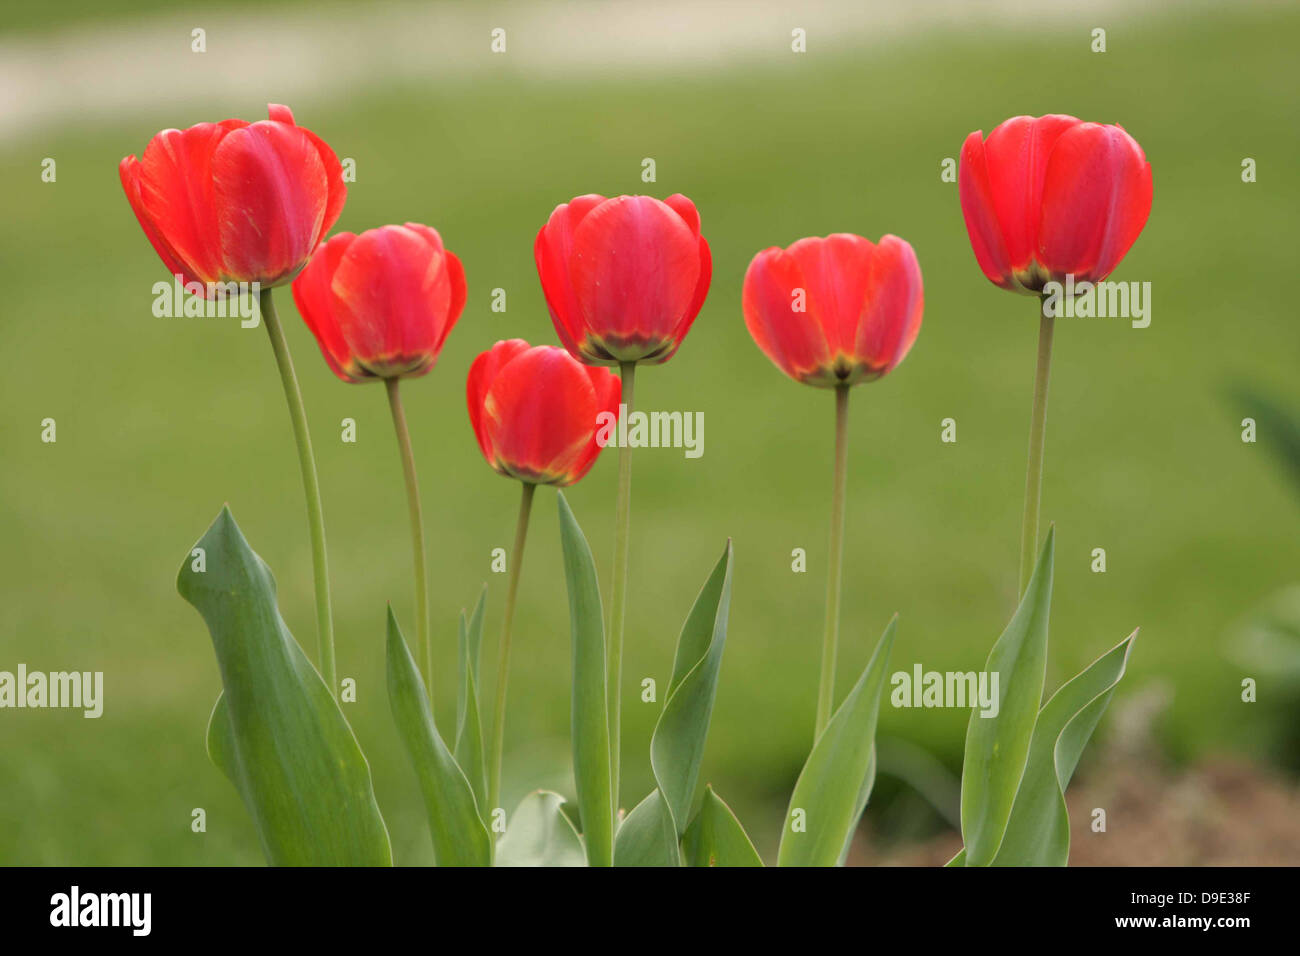 RED GREEN TULIPS SIX GROUP BUNCH GARDEN STEMS LEAVES - Stock Image